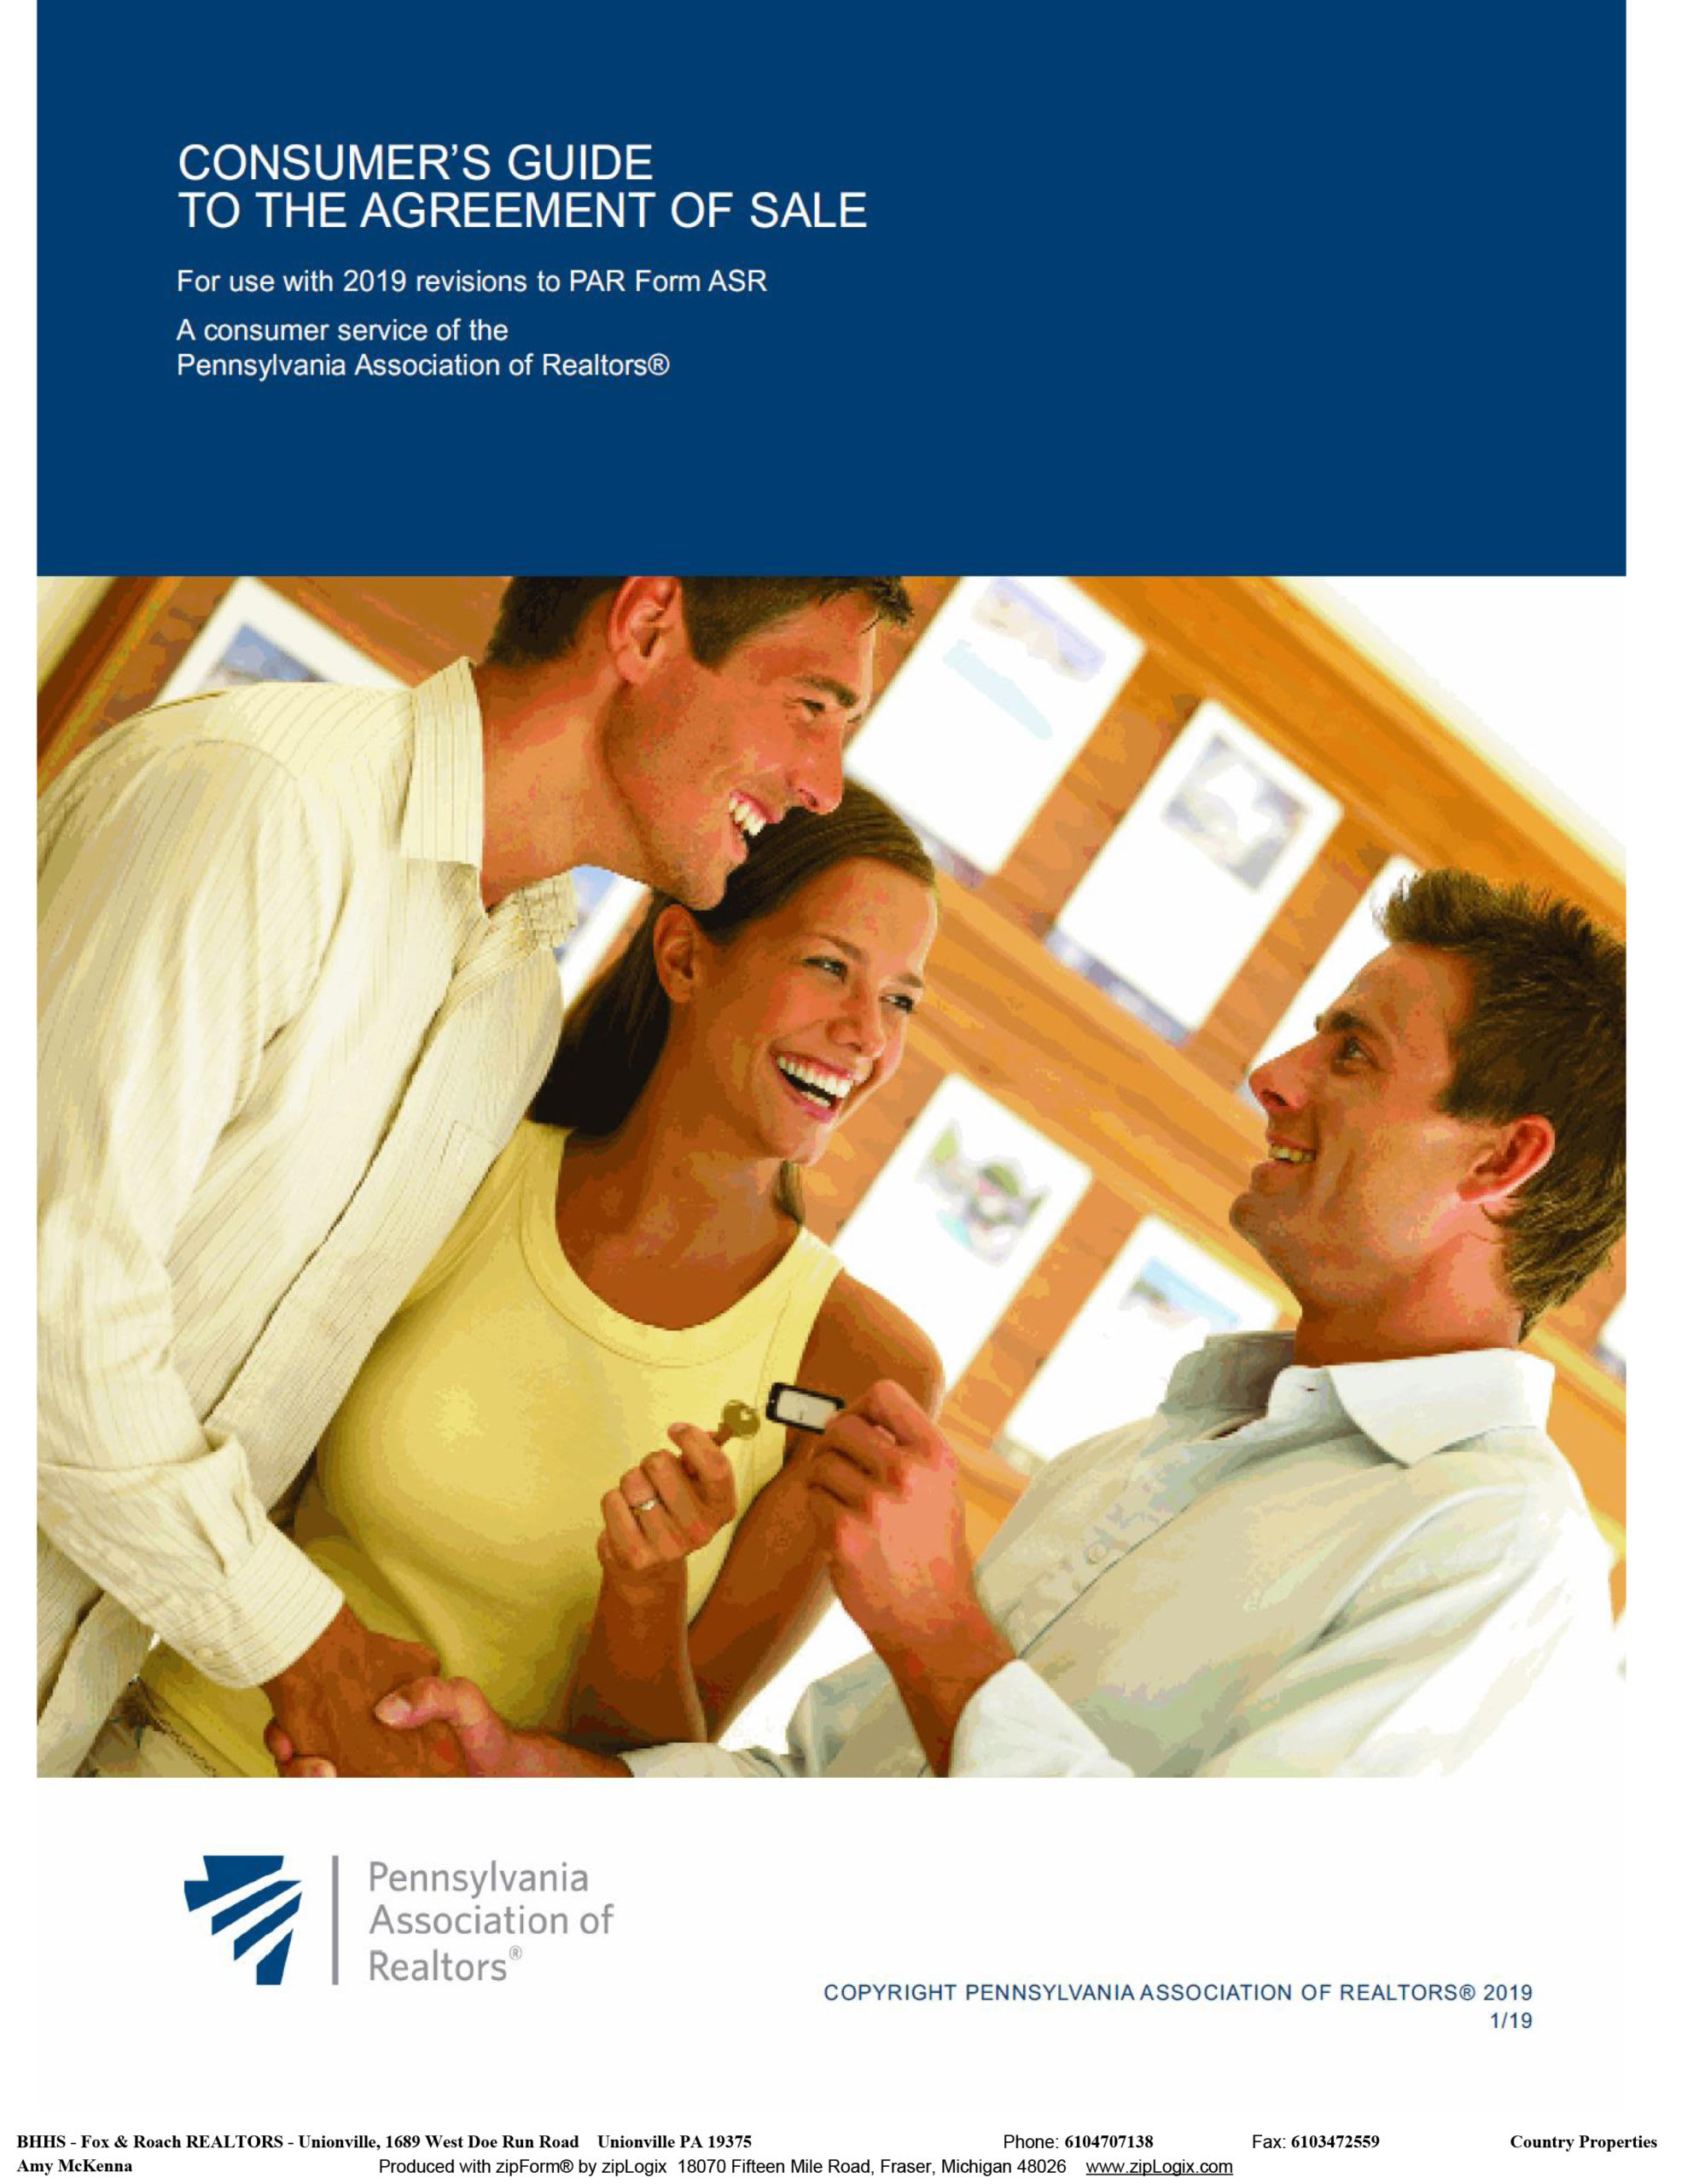 Consumer's Guide to Agreement of Sale